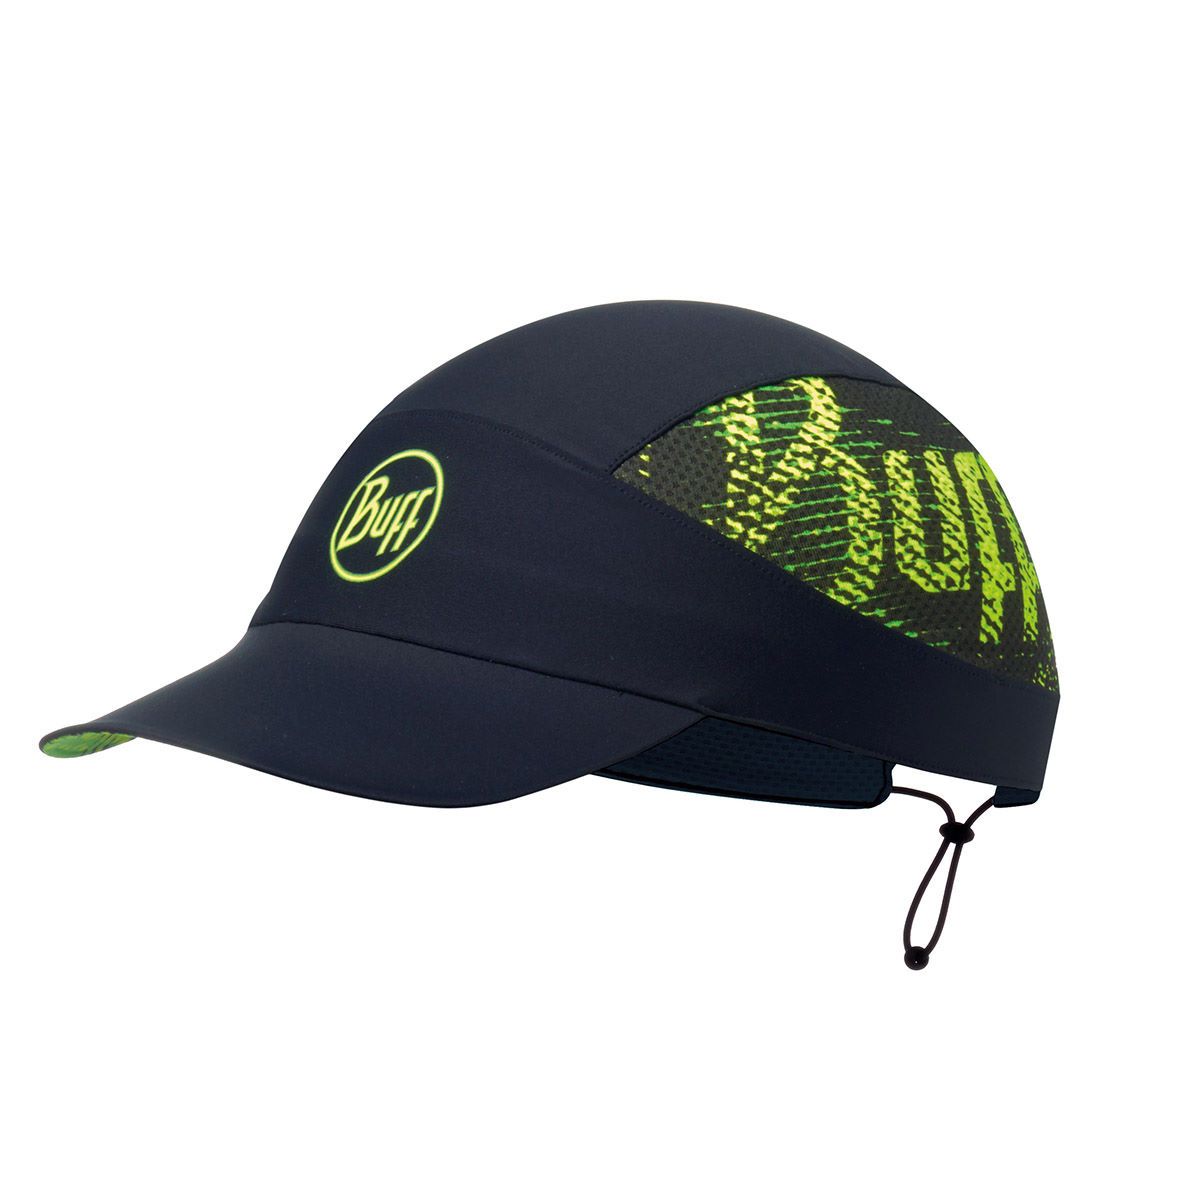 Wiggle Com Buff Pack Run Cap Flash Logo Black Hats